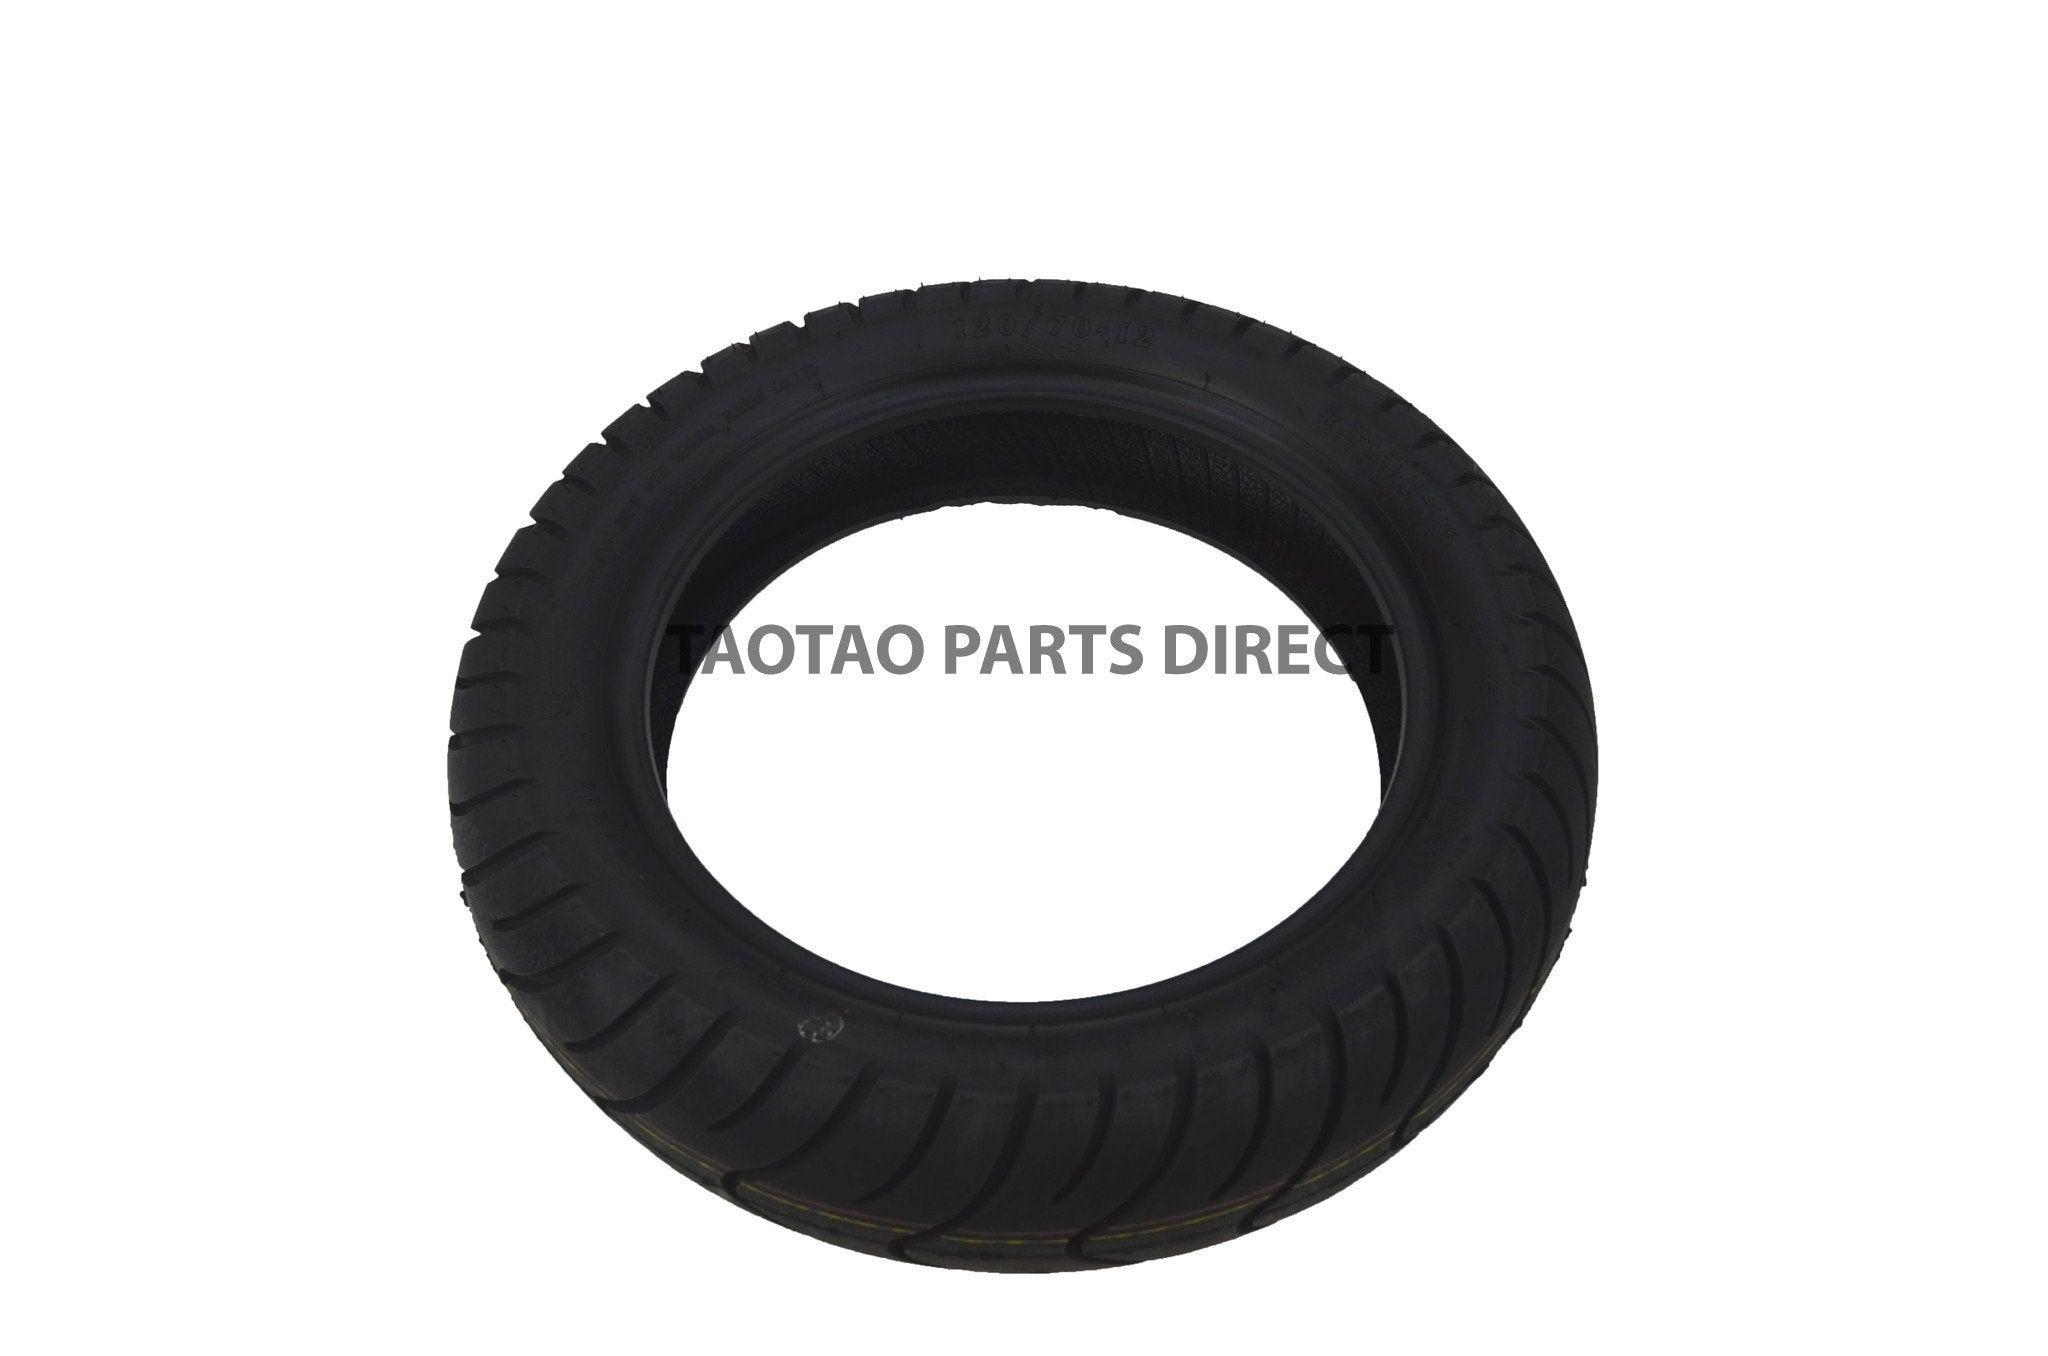 120x70-12 Tire - TaoTaoPartsDirect.com